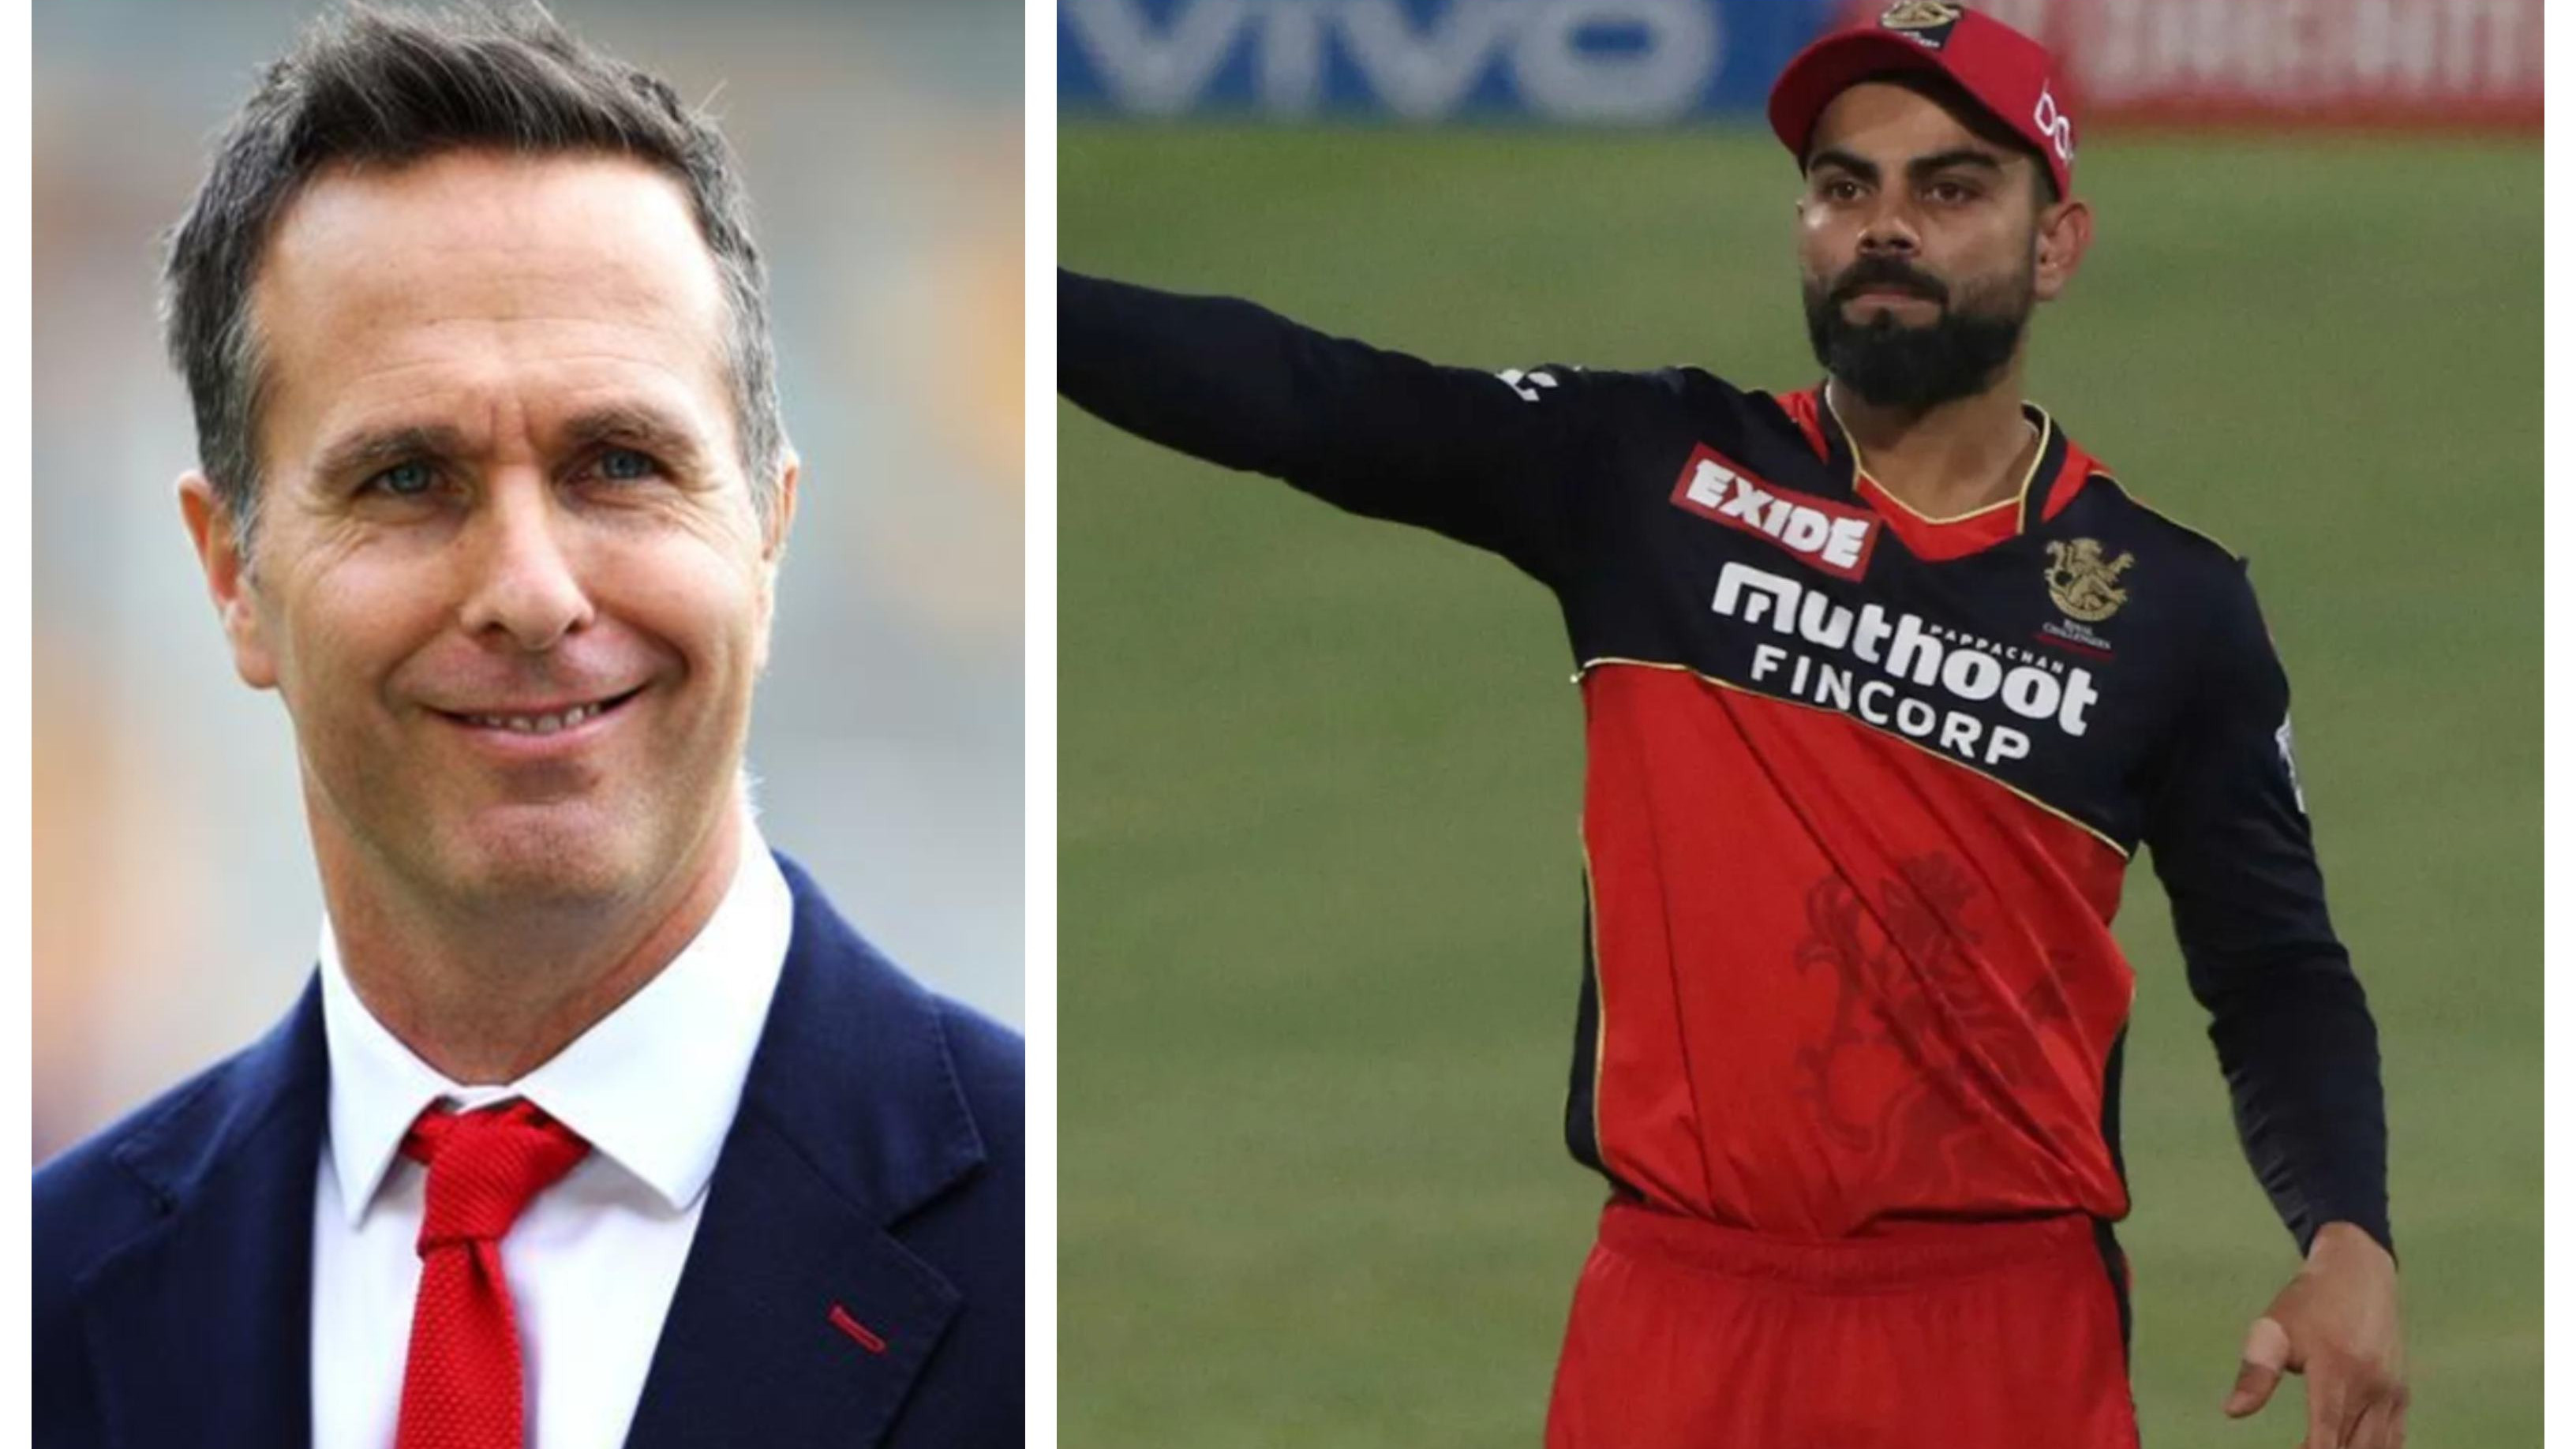 IPL 2021: 'He will see himself as a failure in IPL captaincy', Vaughan on Kohli's stint as RCB skipper